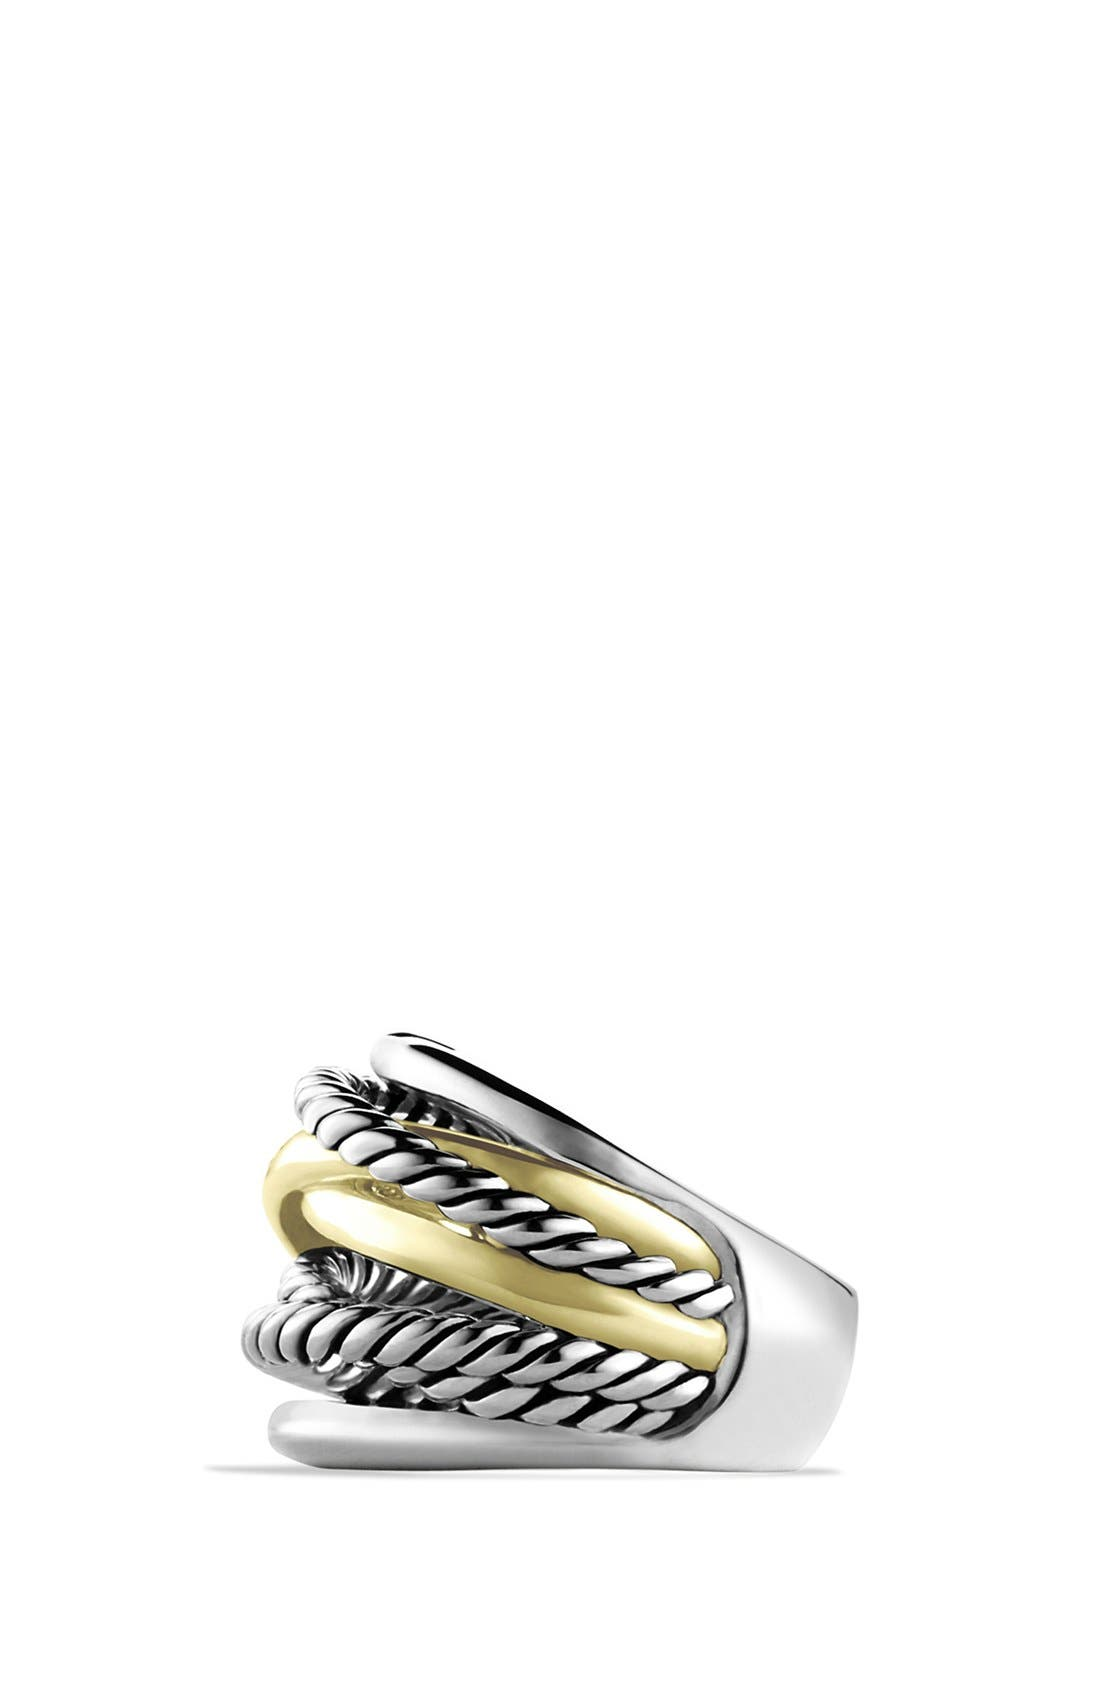 'Crossover' Wide Ring with Gold,                             Alternate thumbnail 2, color,                             STERLING SILVER/ 14K GOLD